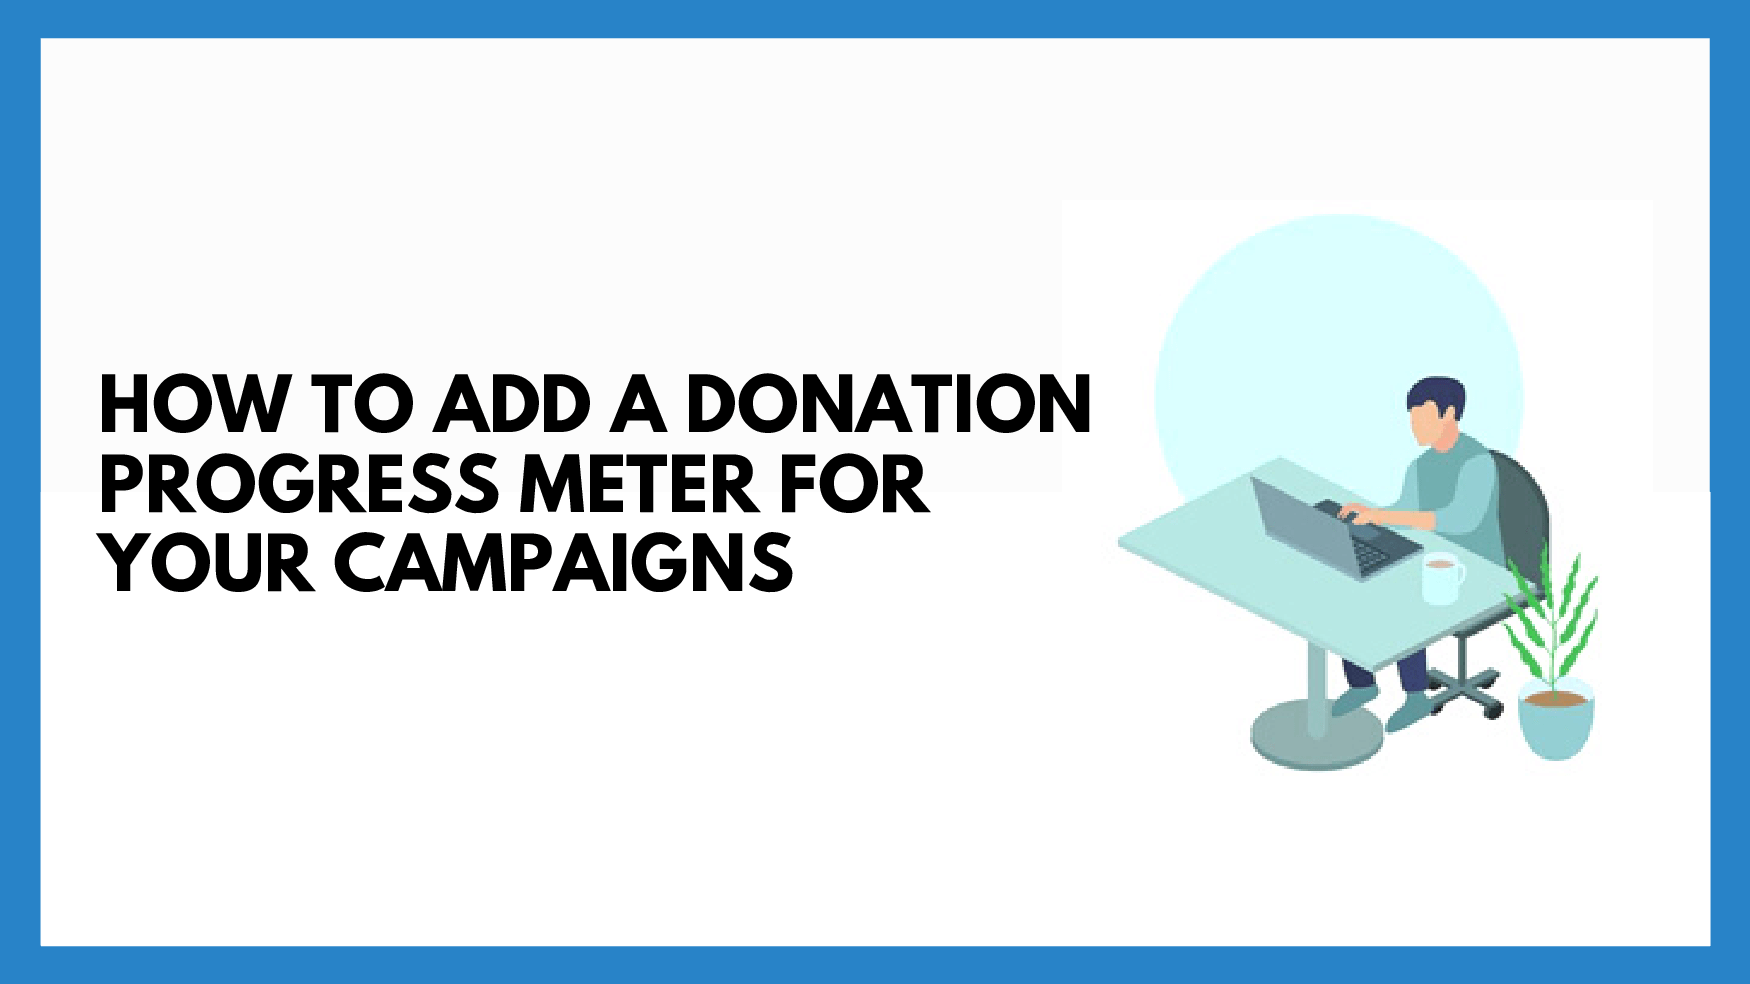 How To Add A Donation Progress Meter For Your Campaigns